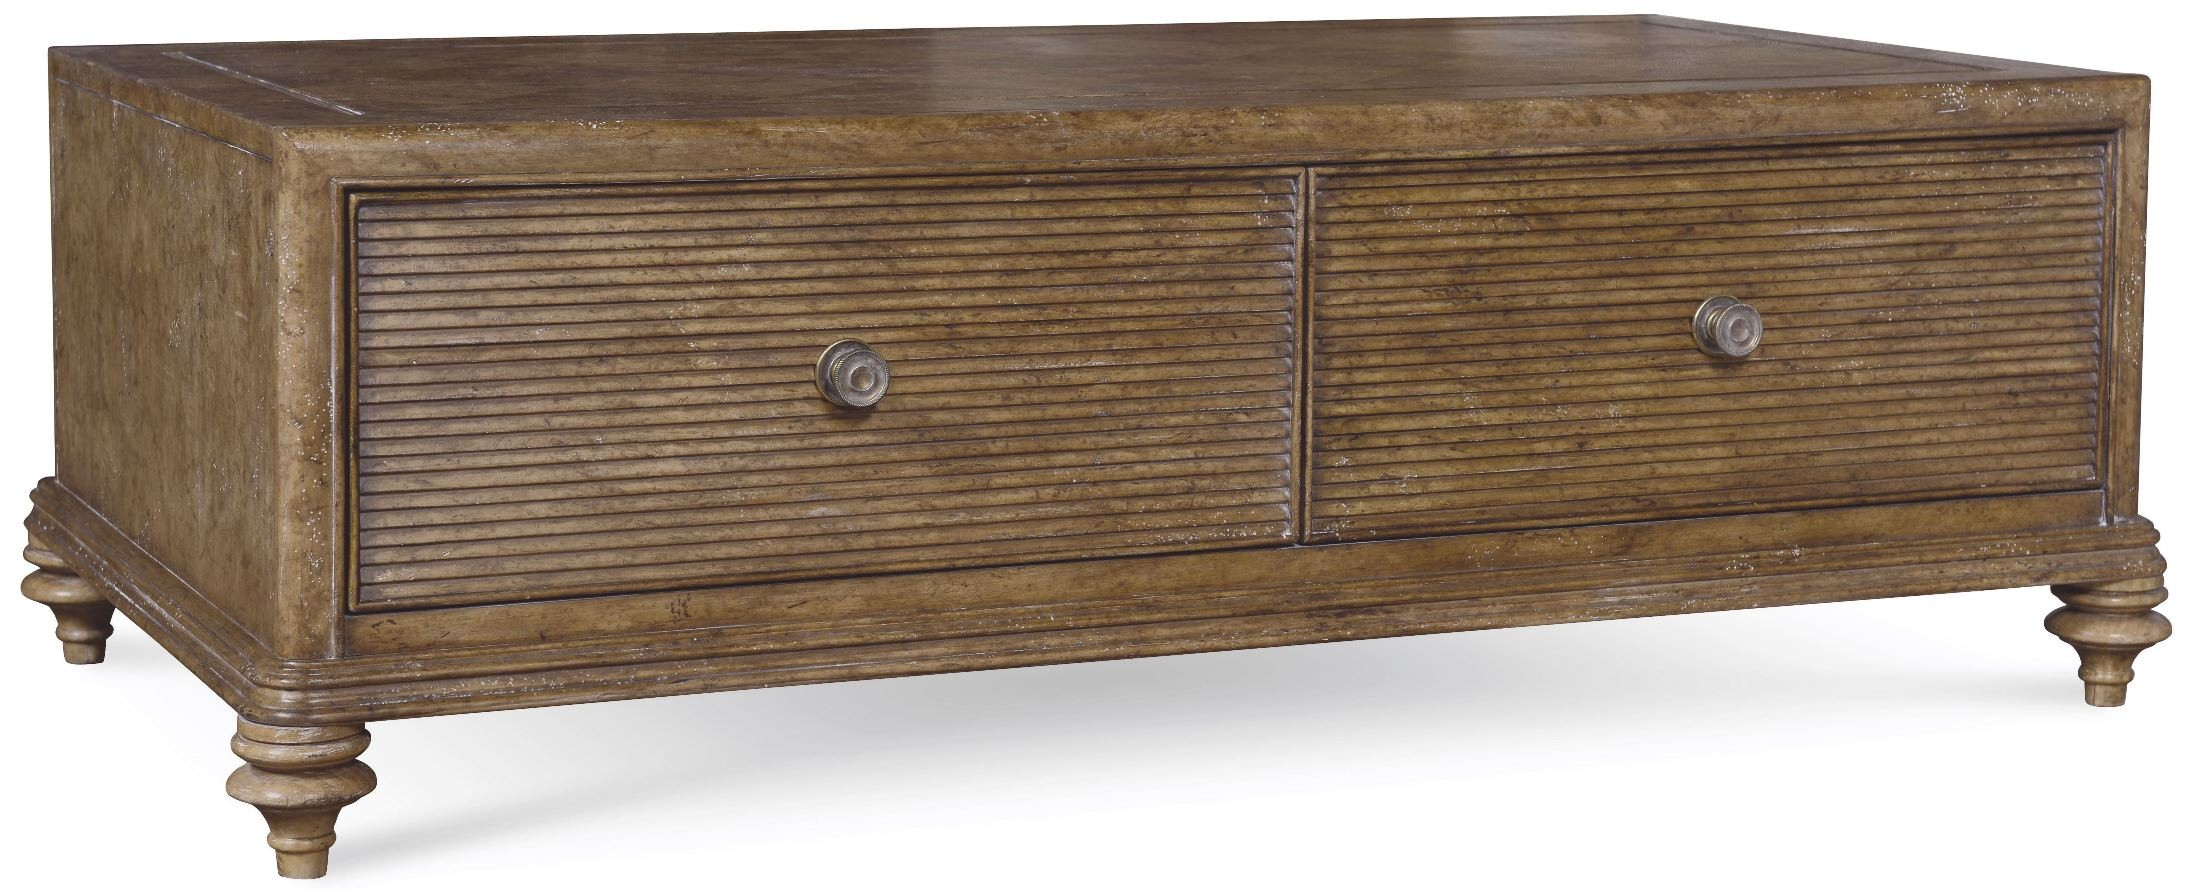 Pavilion rustic pine storage cocktail table from art for Pine coffee table with storage